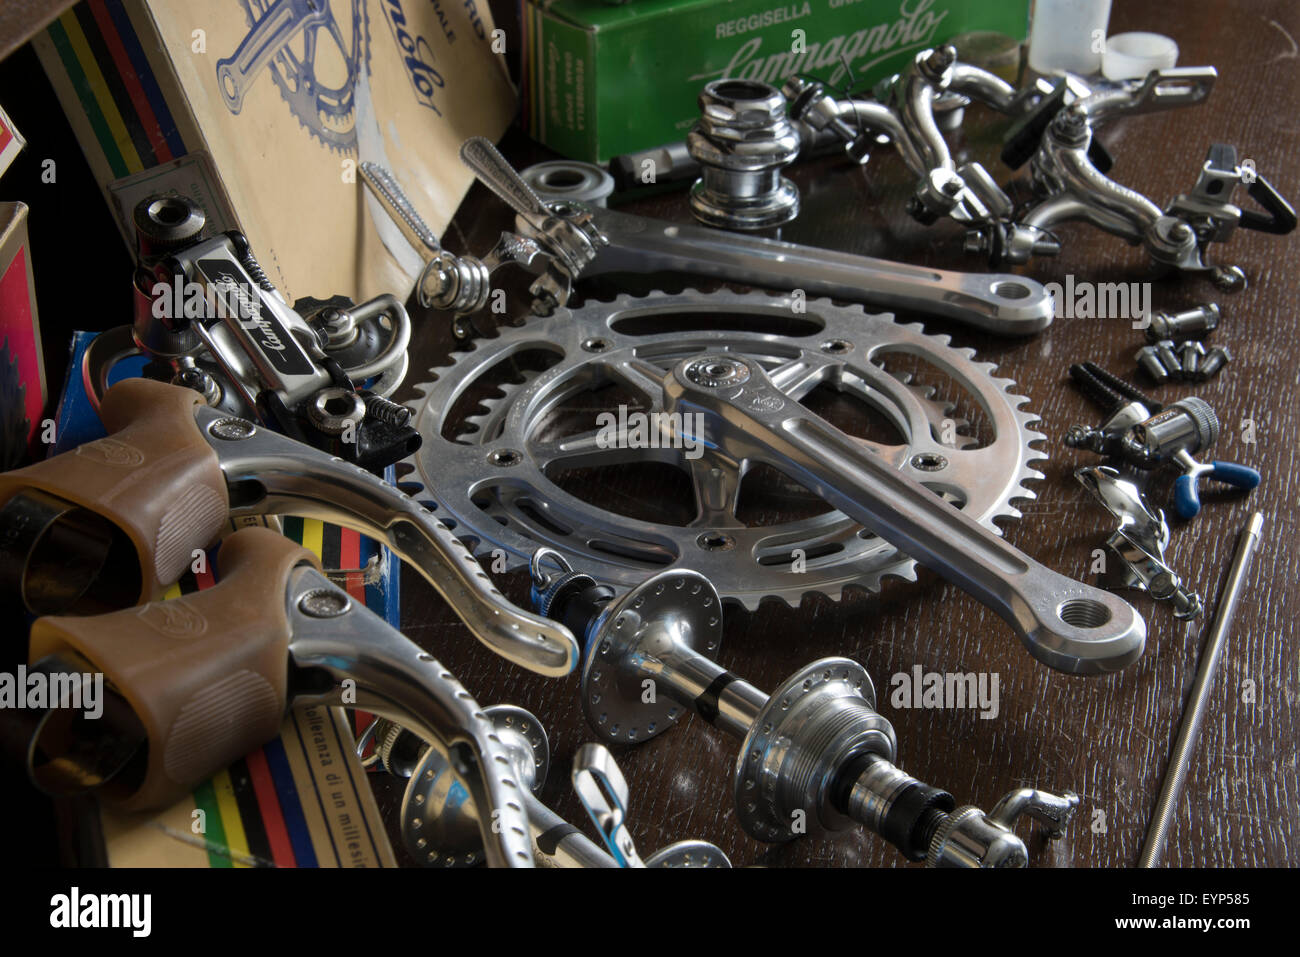 Classic vintage Campagnolo cycle components. - Stock Image